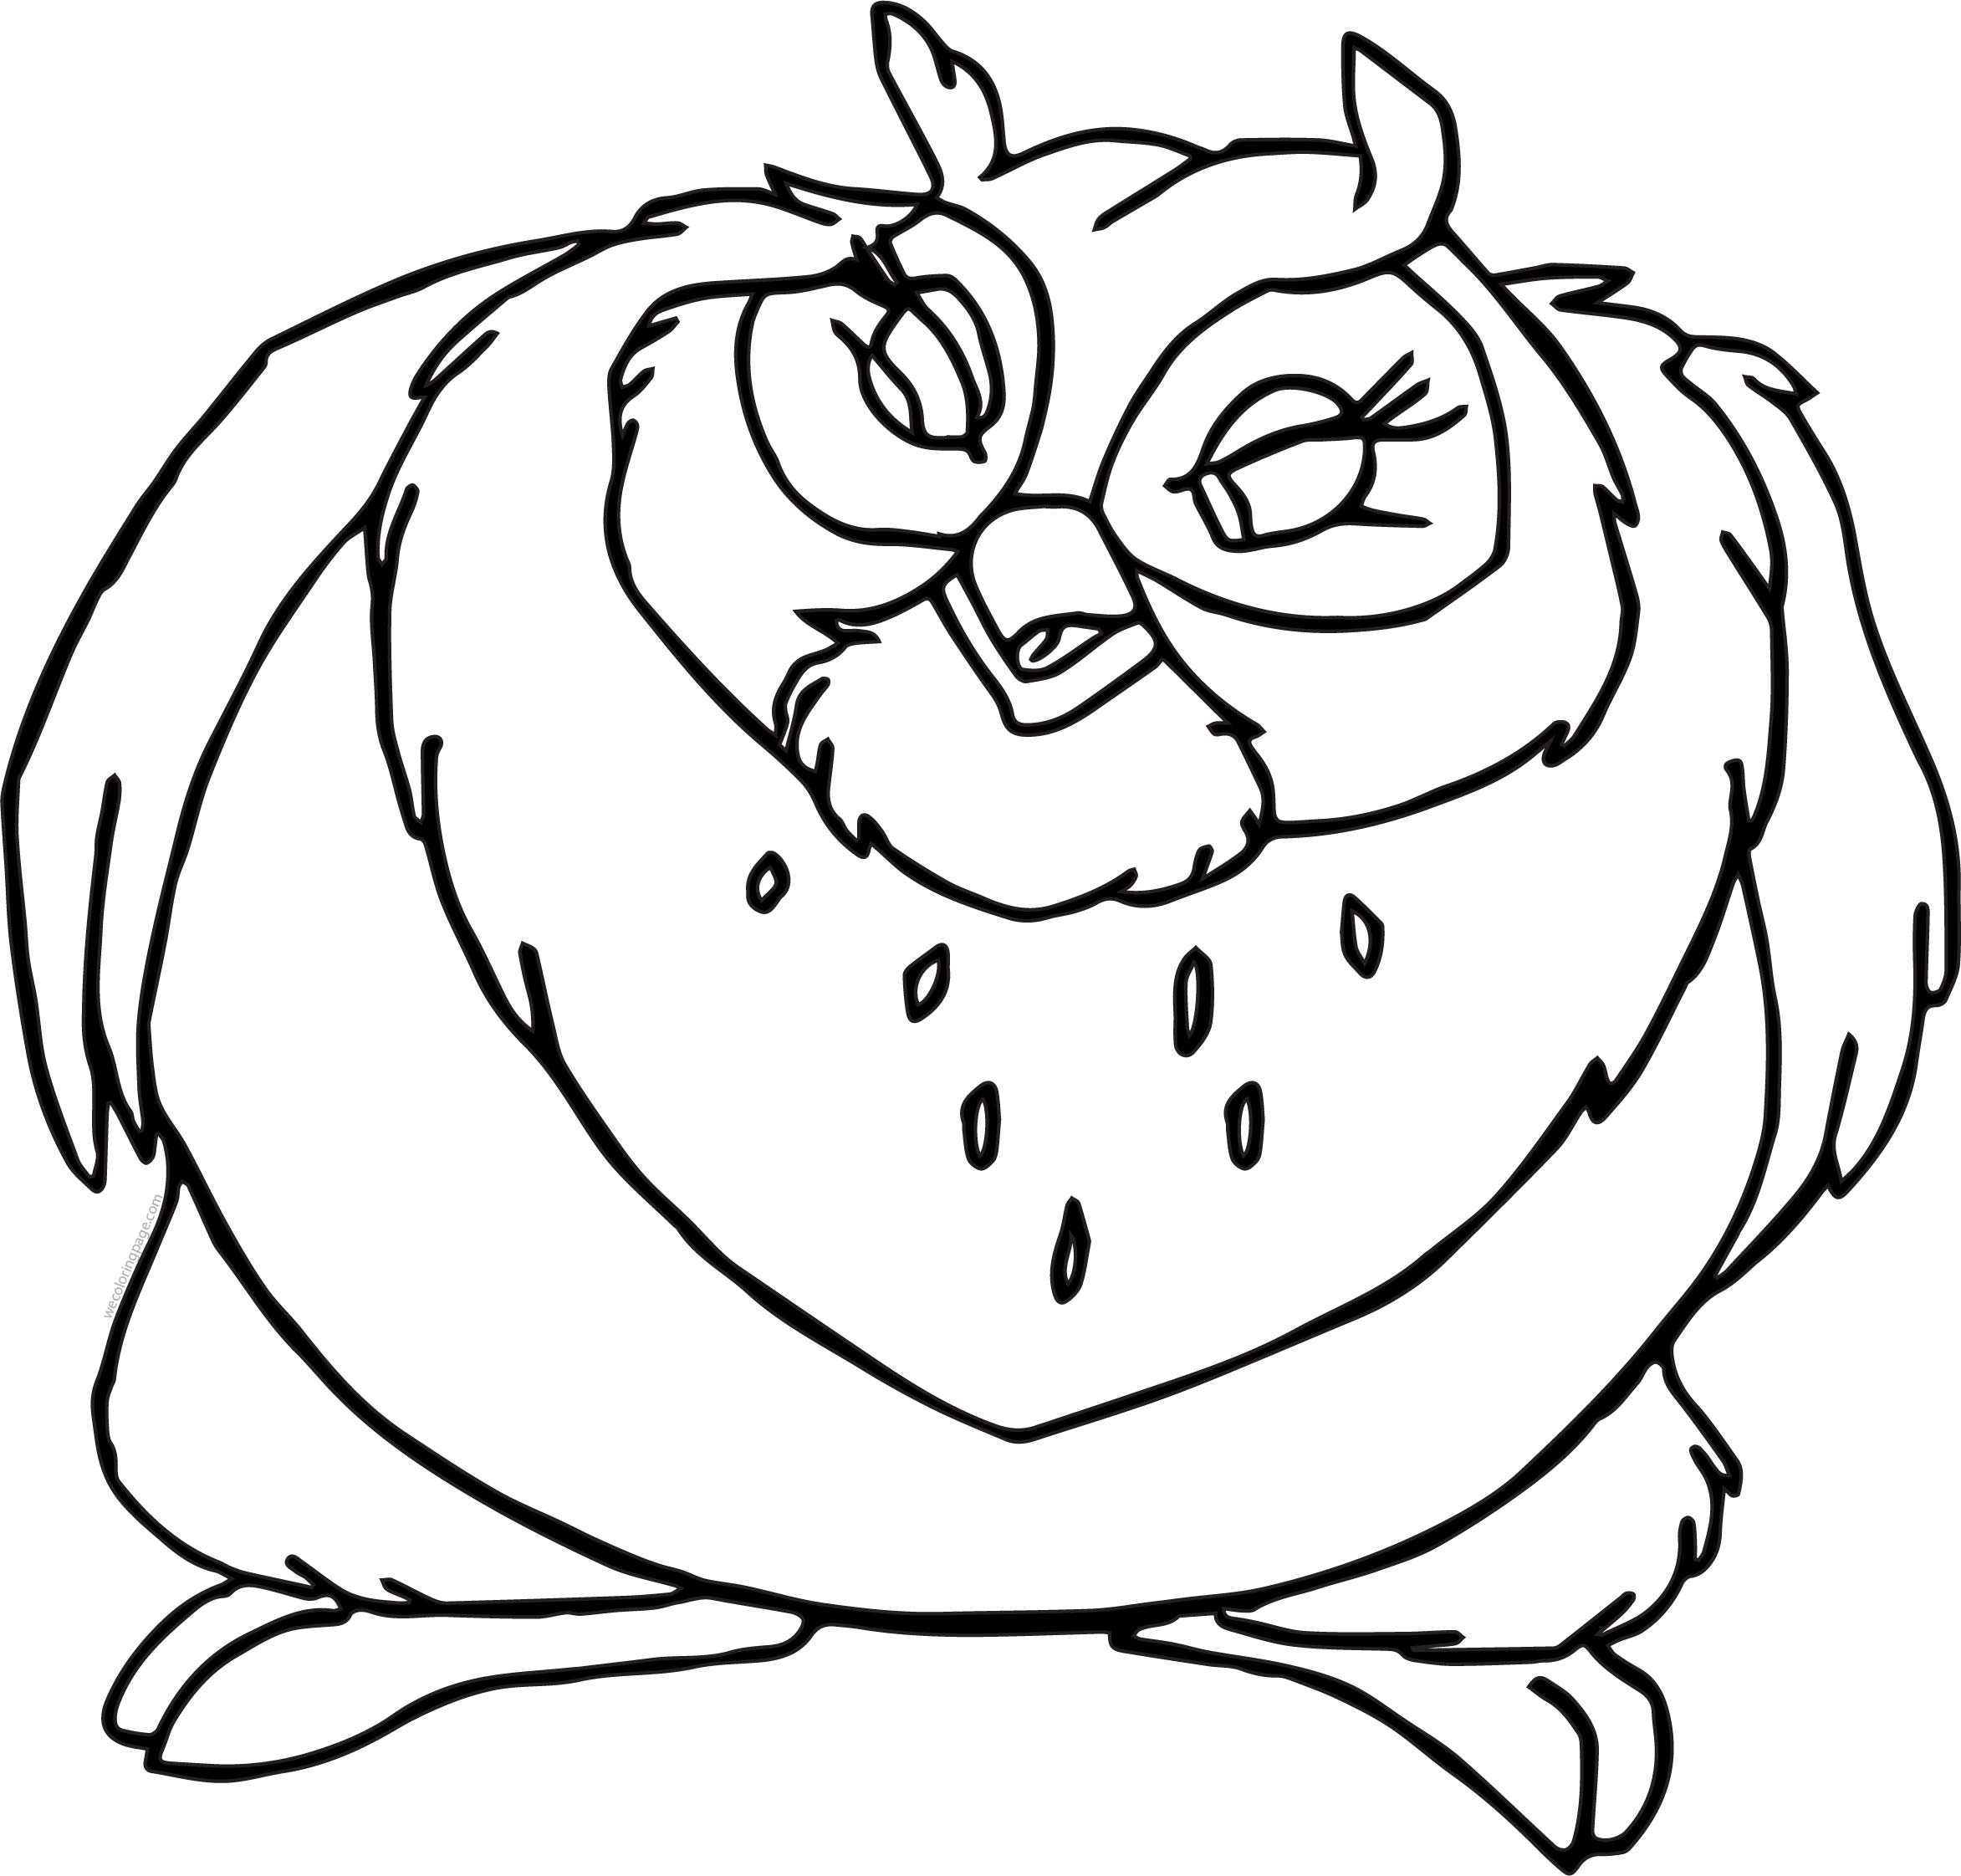 Big Bird Face Coloring Page